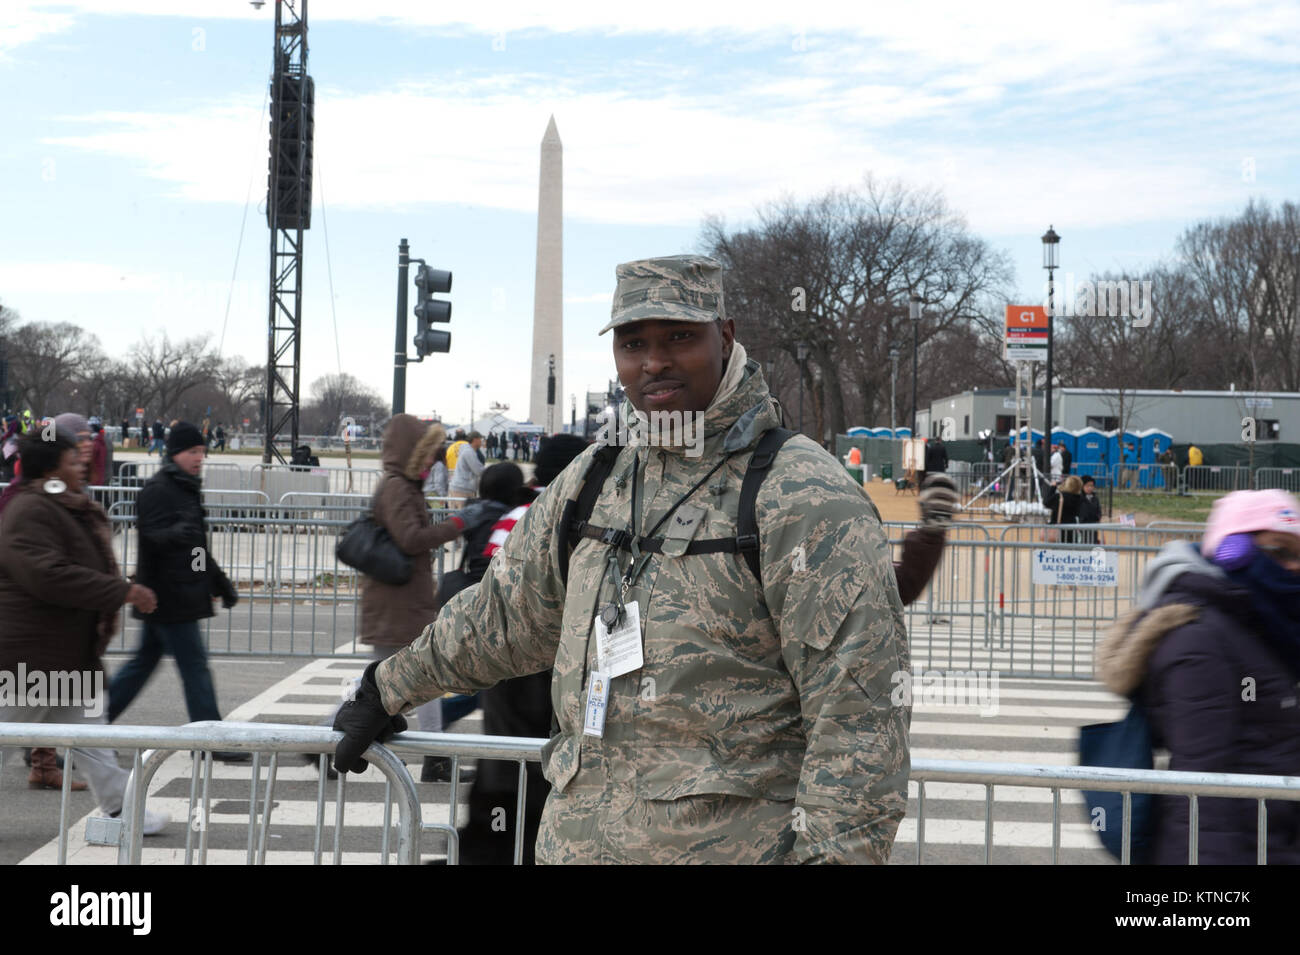 WASHINGTON, D.C. — – Airman 1st Class Damion Myrie, a heavy equipment operator at the 201st Red Horse Squadron, Pennsylvania Air National Guard, Fort Indiantown Gap, Pa., was one of the many National Guardsmen providing crowd control support at the Presidential Inauguration.  The 57th Presidential Inauguration was held in Washington D.C. on Monday, January 21, 2013.   During the 10-day inaugural period approximately 6,000 National Guard personnel from over 30 states and territories worked for Joint Task Force-District of Columbia, providing traffic control, crowd management, transportation, co Stock Photo